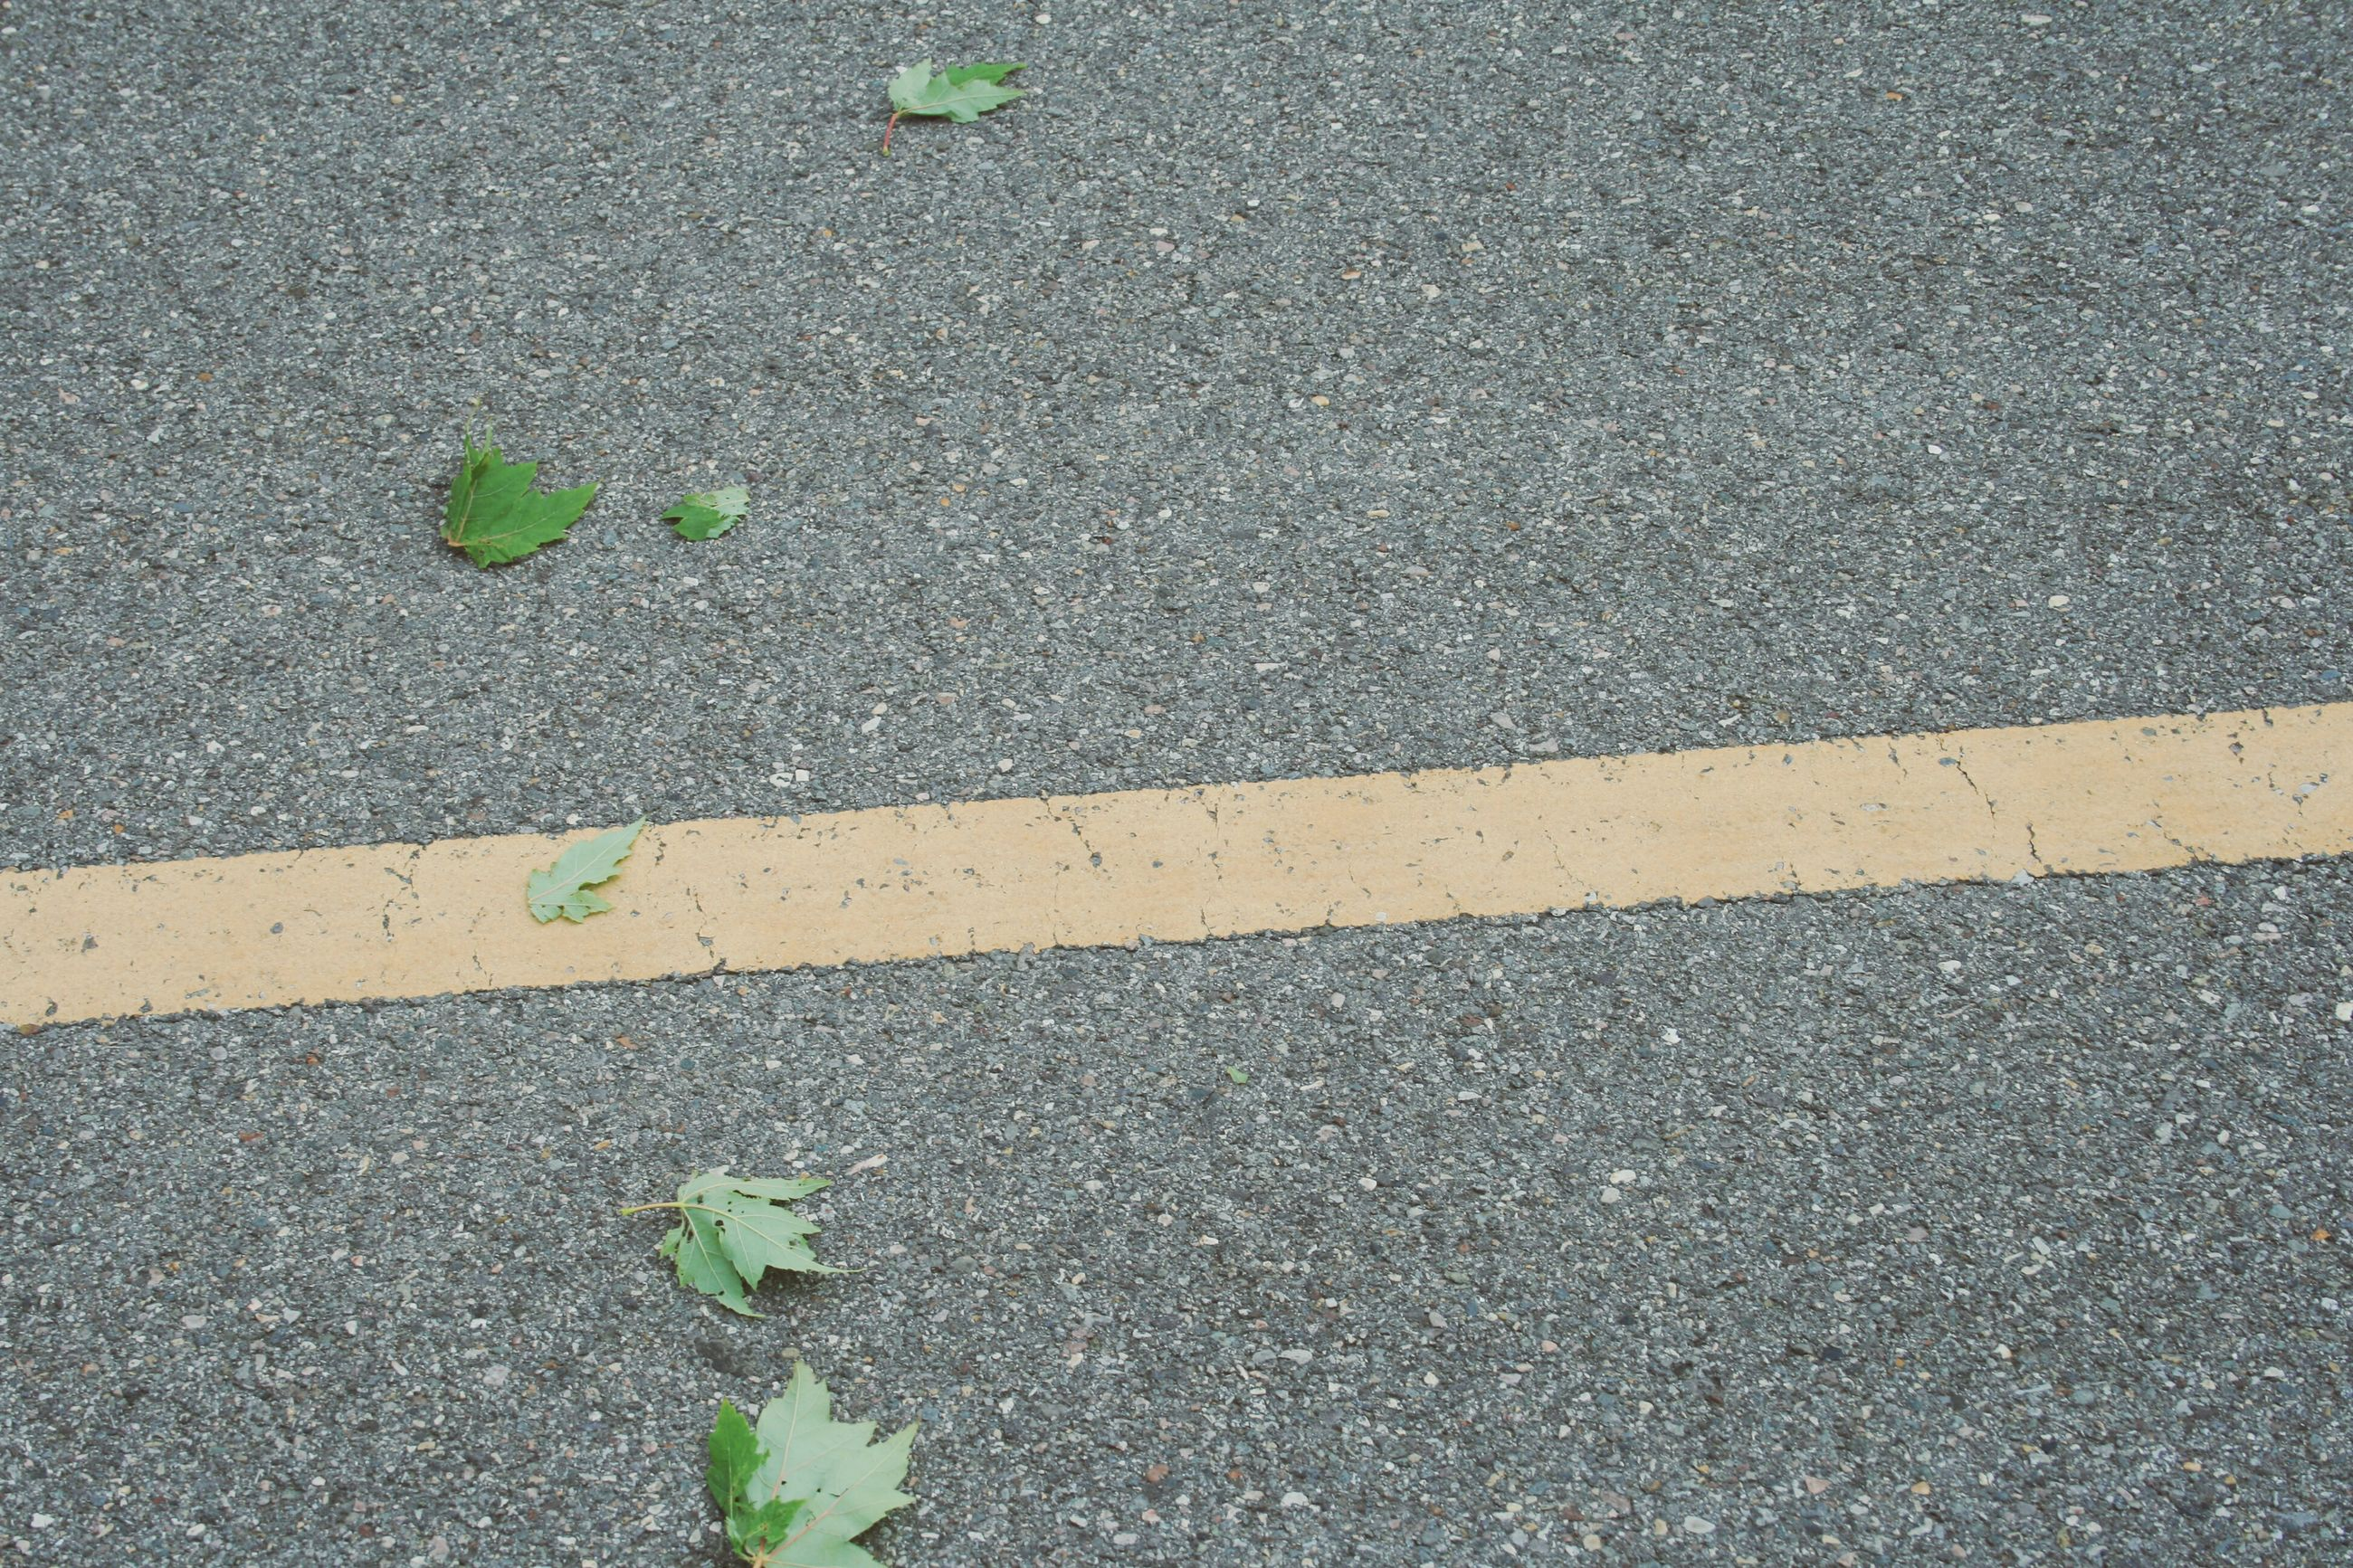 street, asphalt, high angle view, road, road marking, transportation, day, outdoors, leaf, no people, textured, nature, sunlight, growth, ground, plant, close-up, shadow, full frame, green color